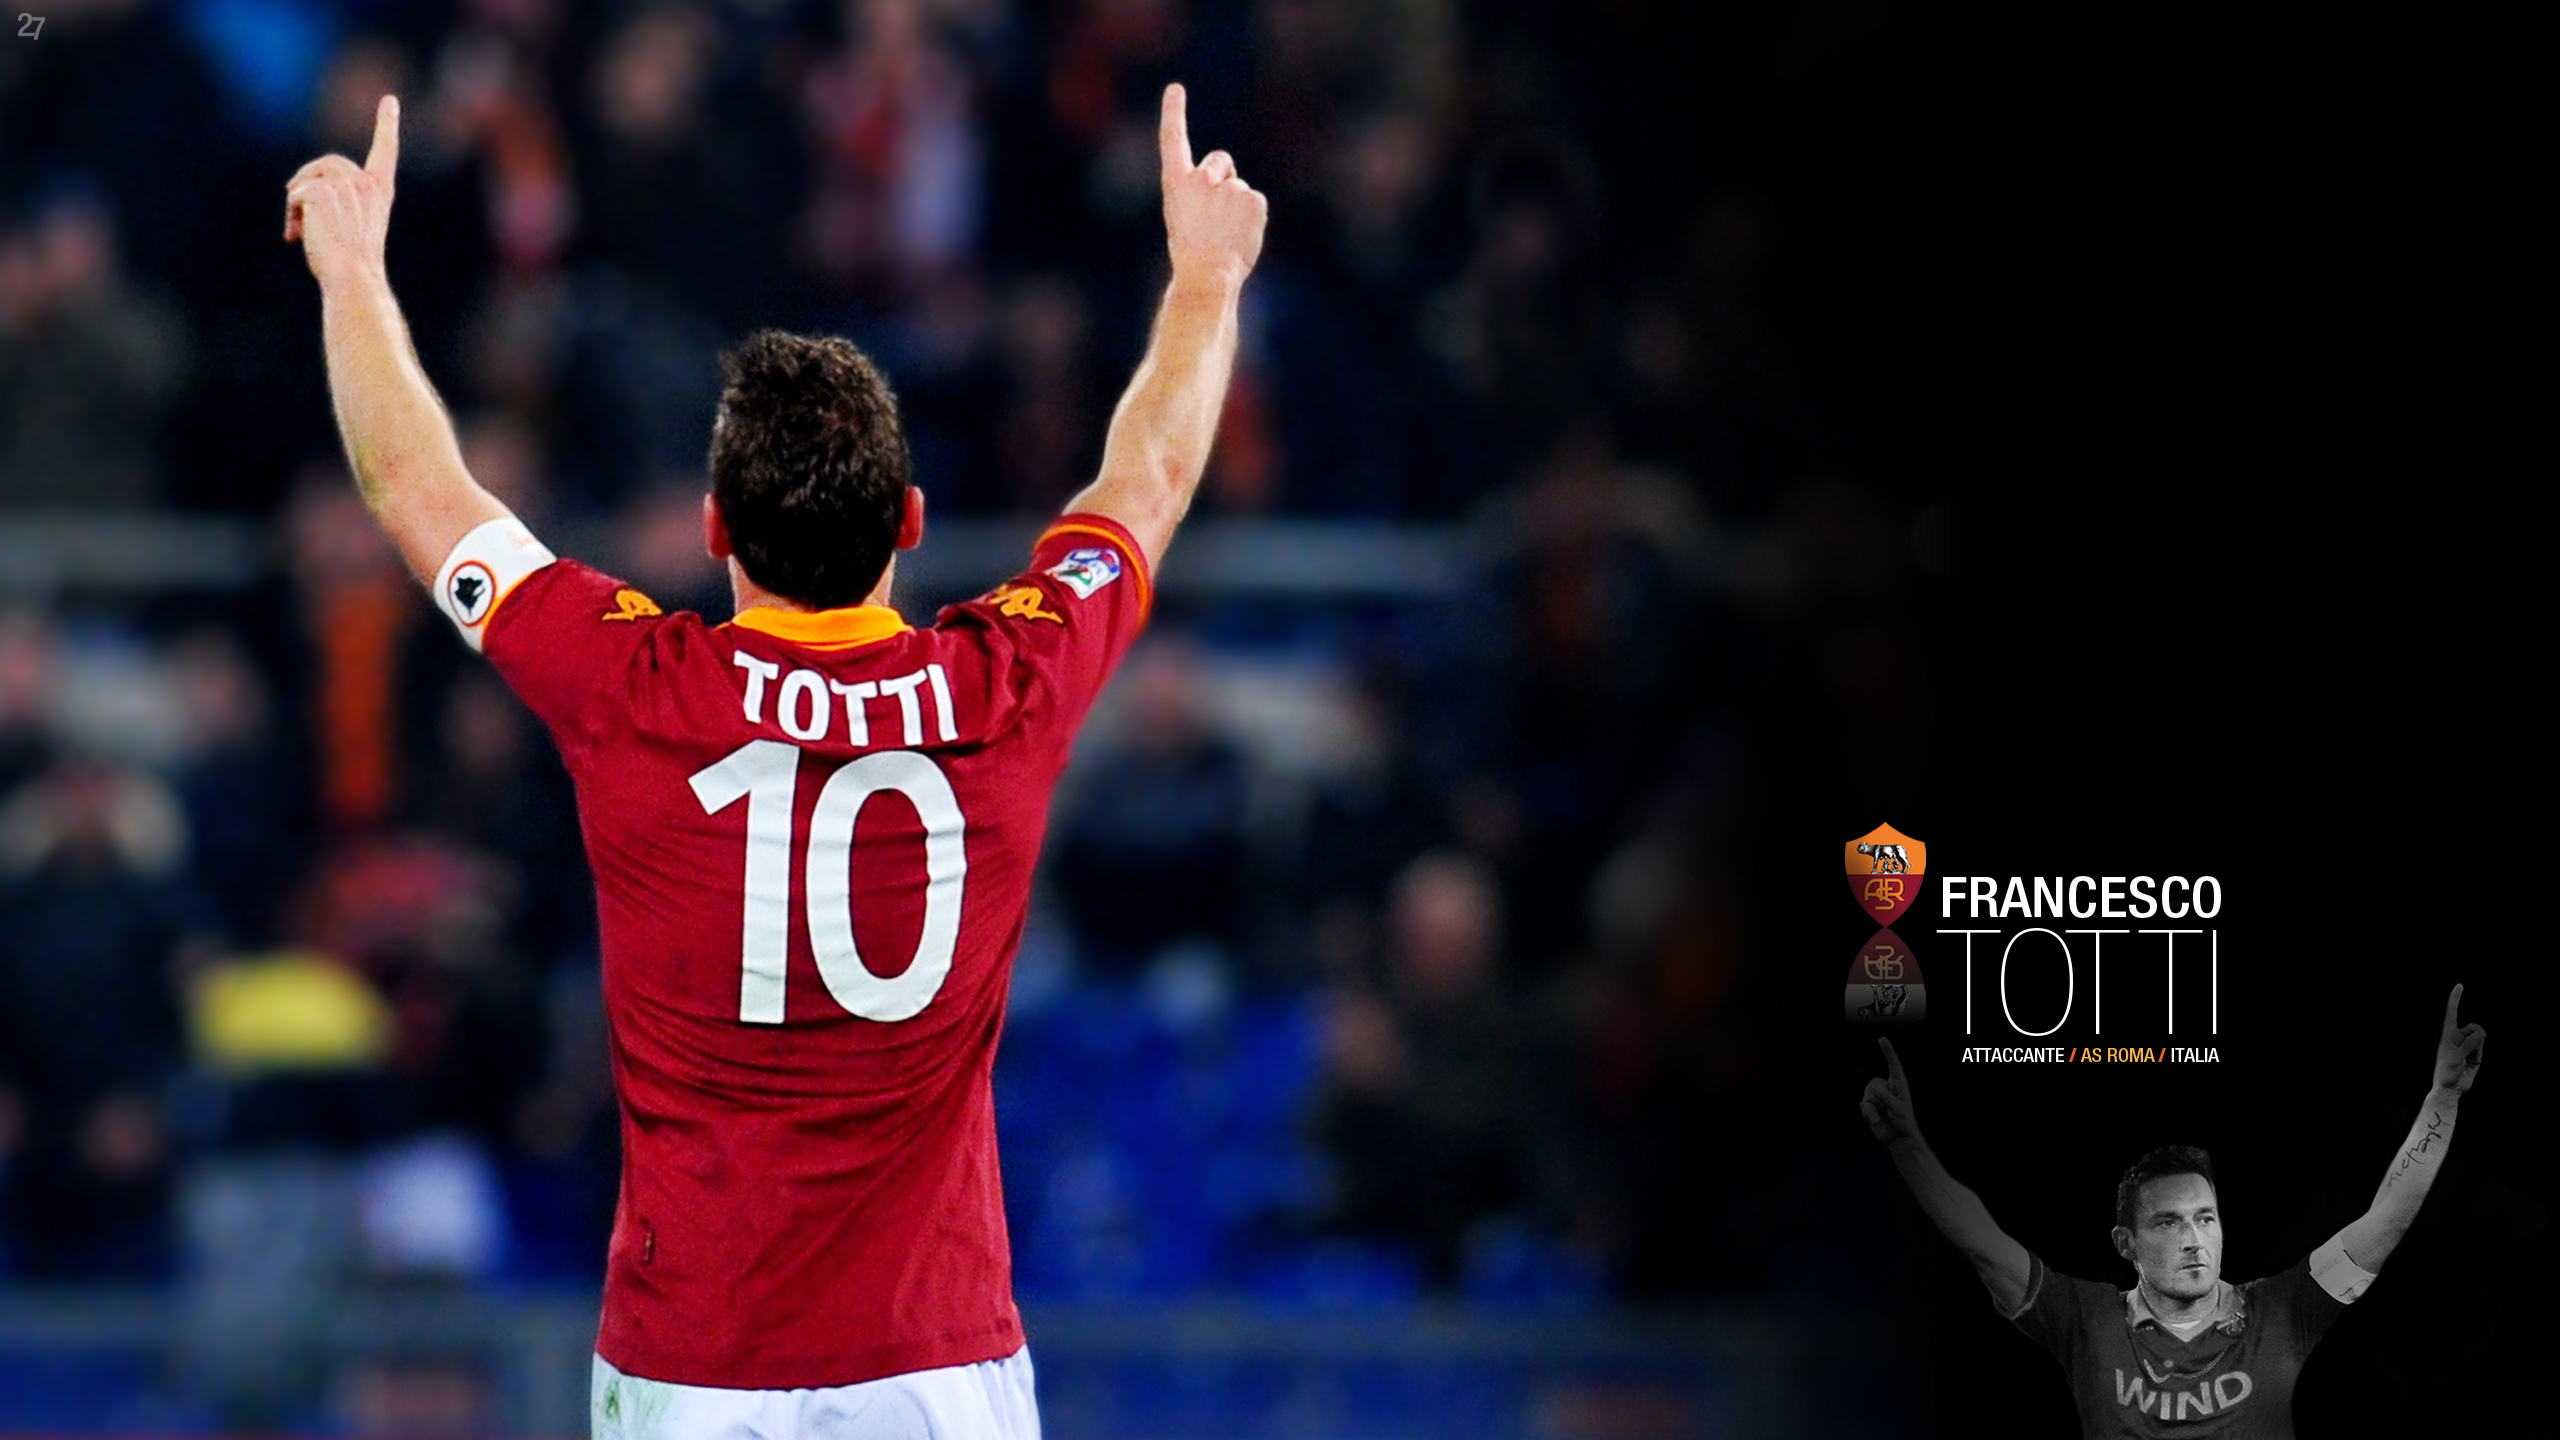 Francesco Totti #226 Wallpapers – Forza27